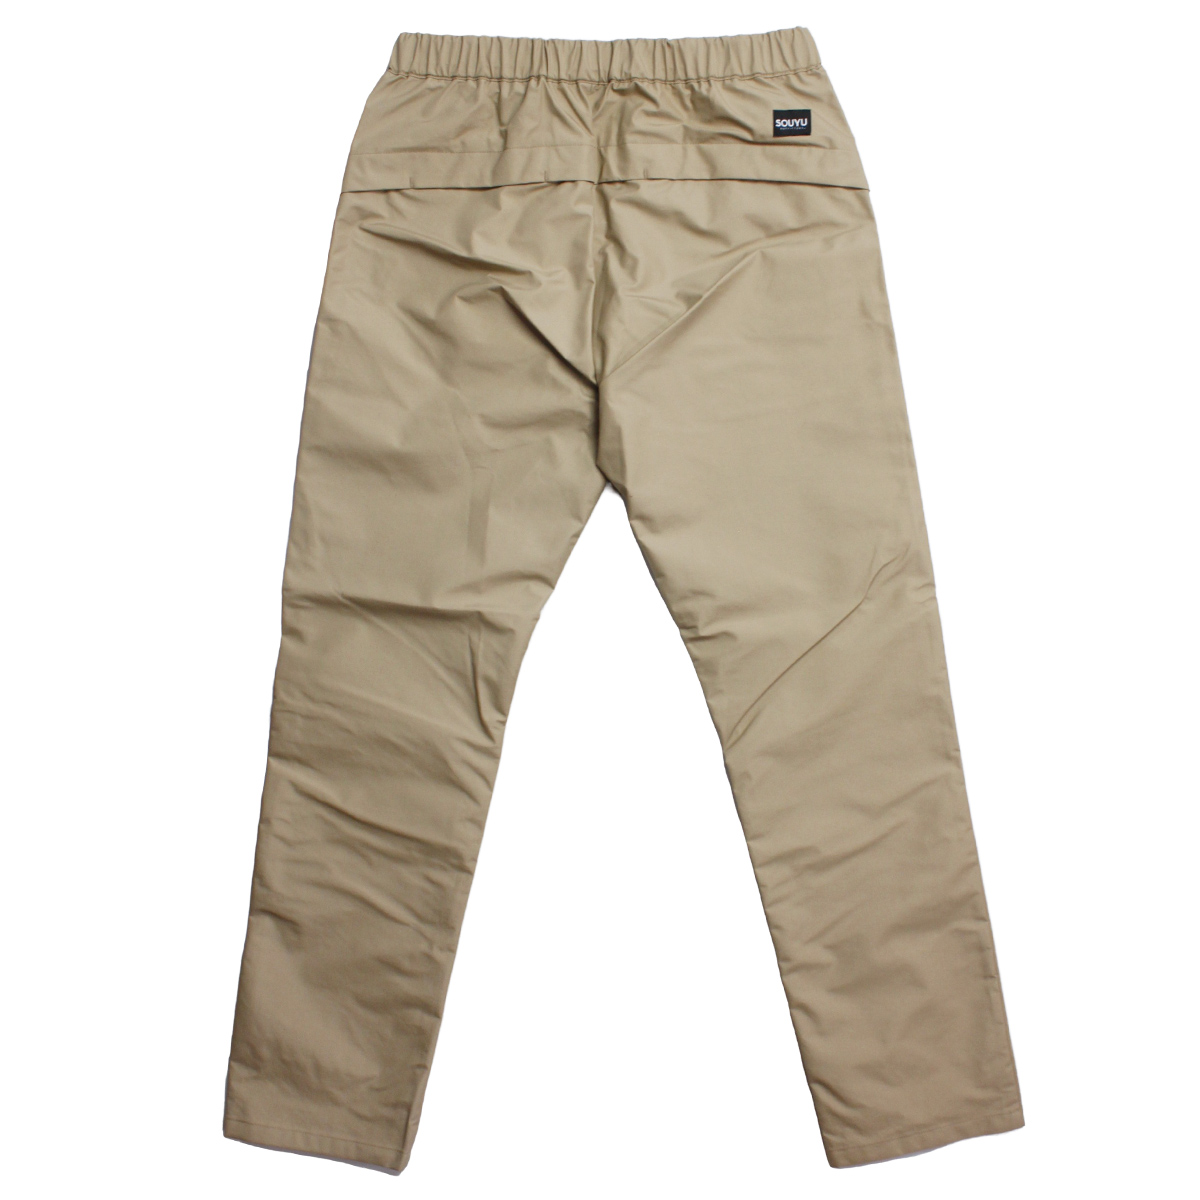 SOUYU OUTFITTERS ソーユーアウトフィッターズ SHELL PANT